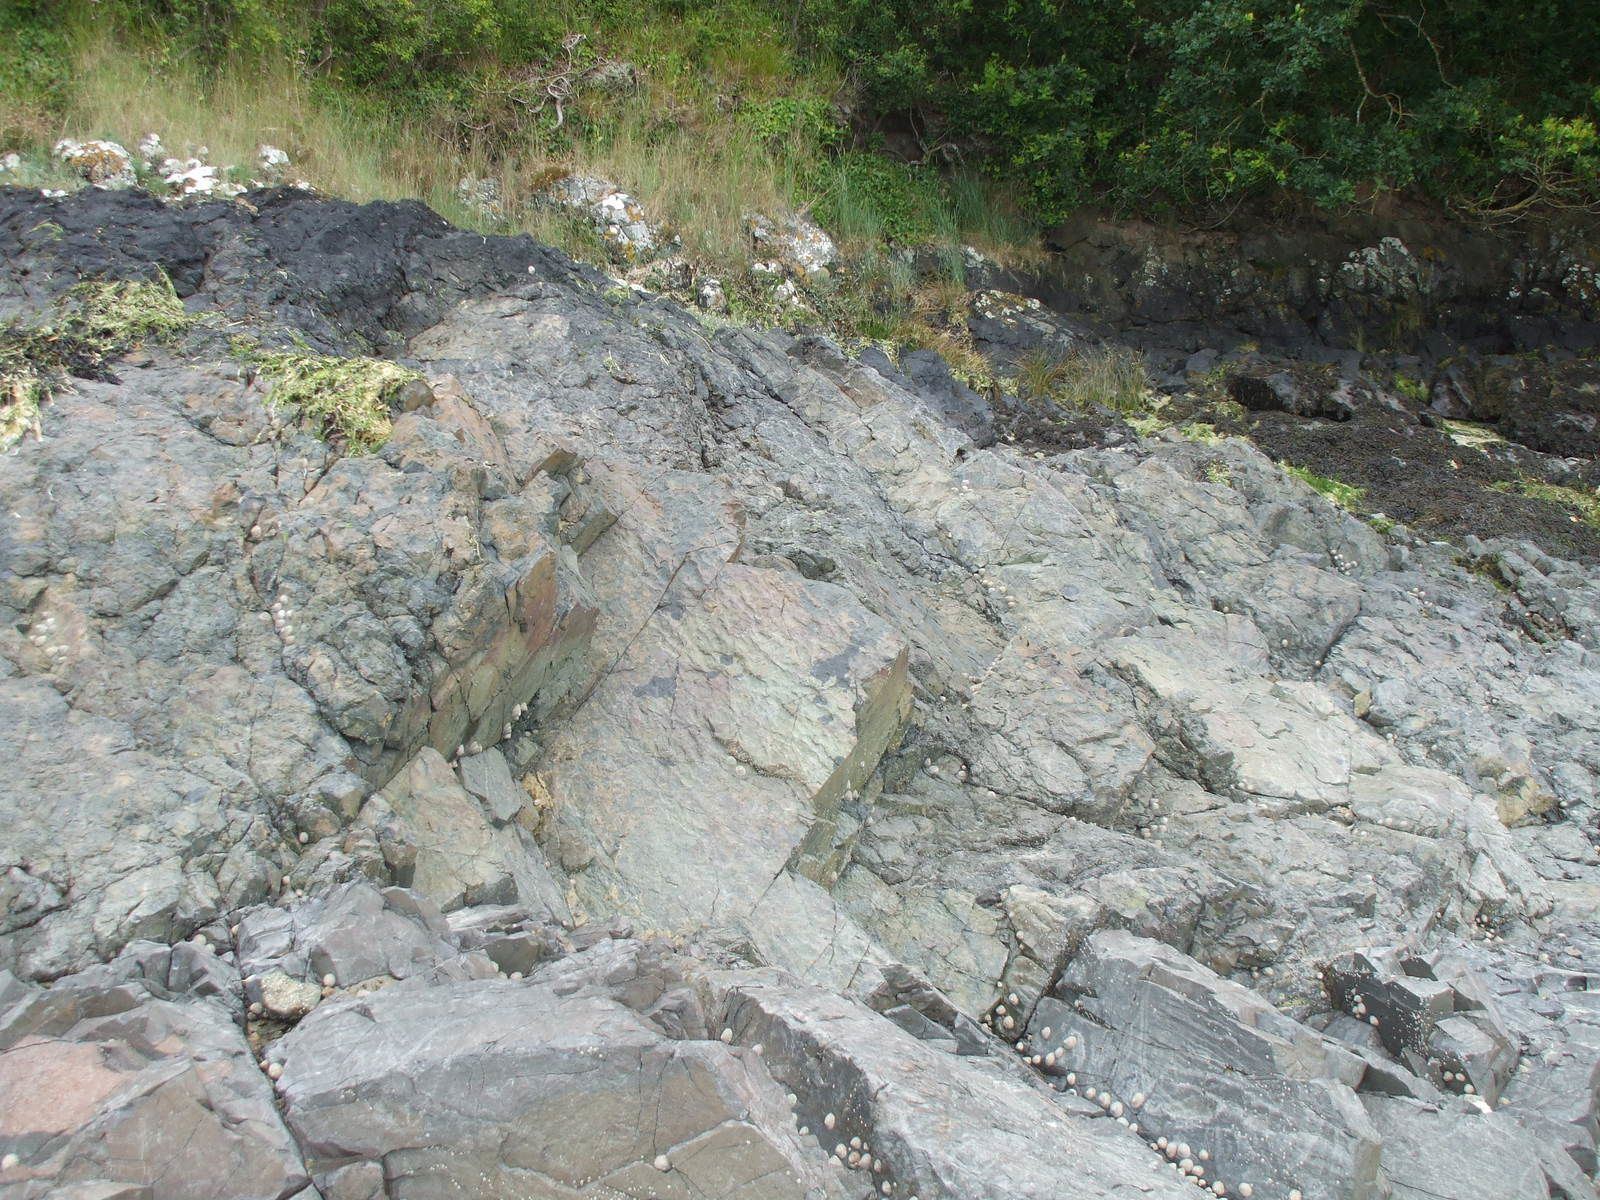 Pillow-lavas sur les bords du Trieux